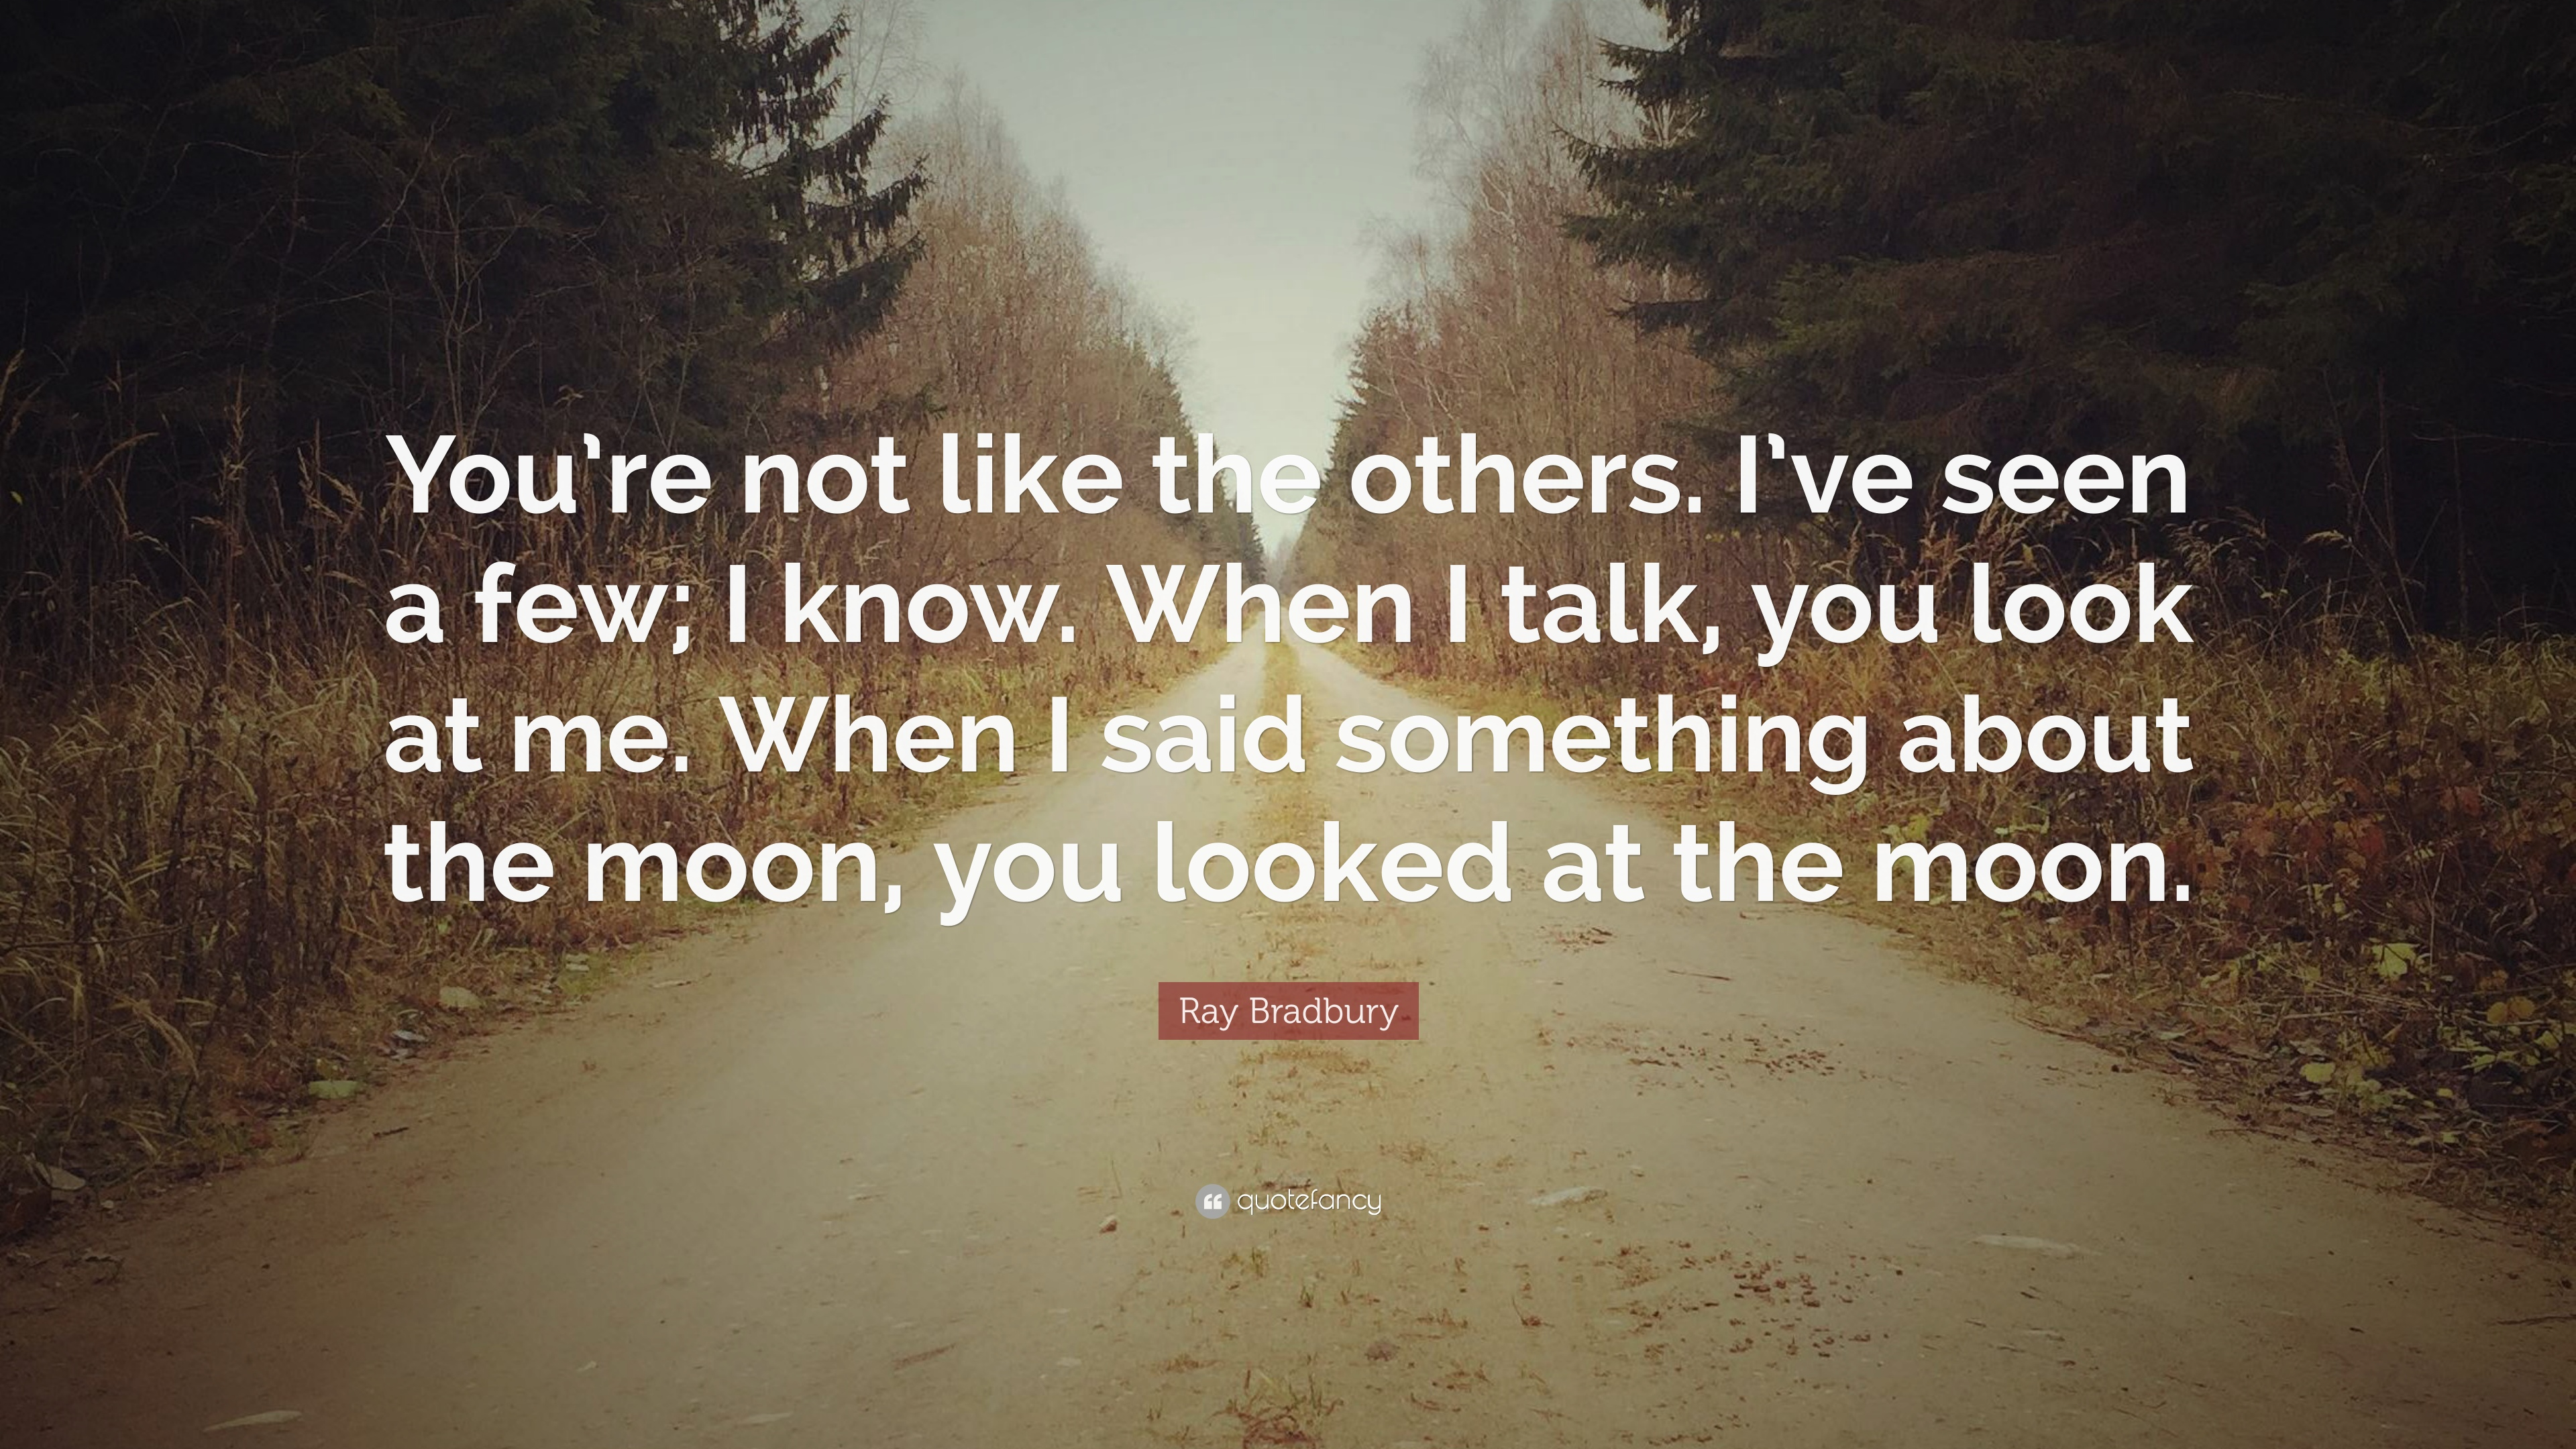 Ray Bradbury Quote Youre Not Like The Others Ive Seen A Few I